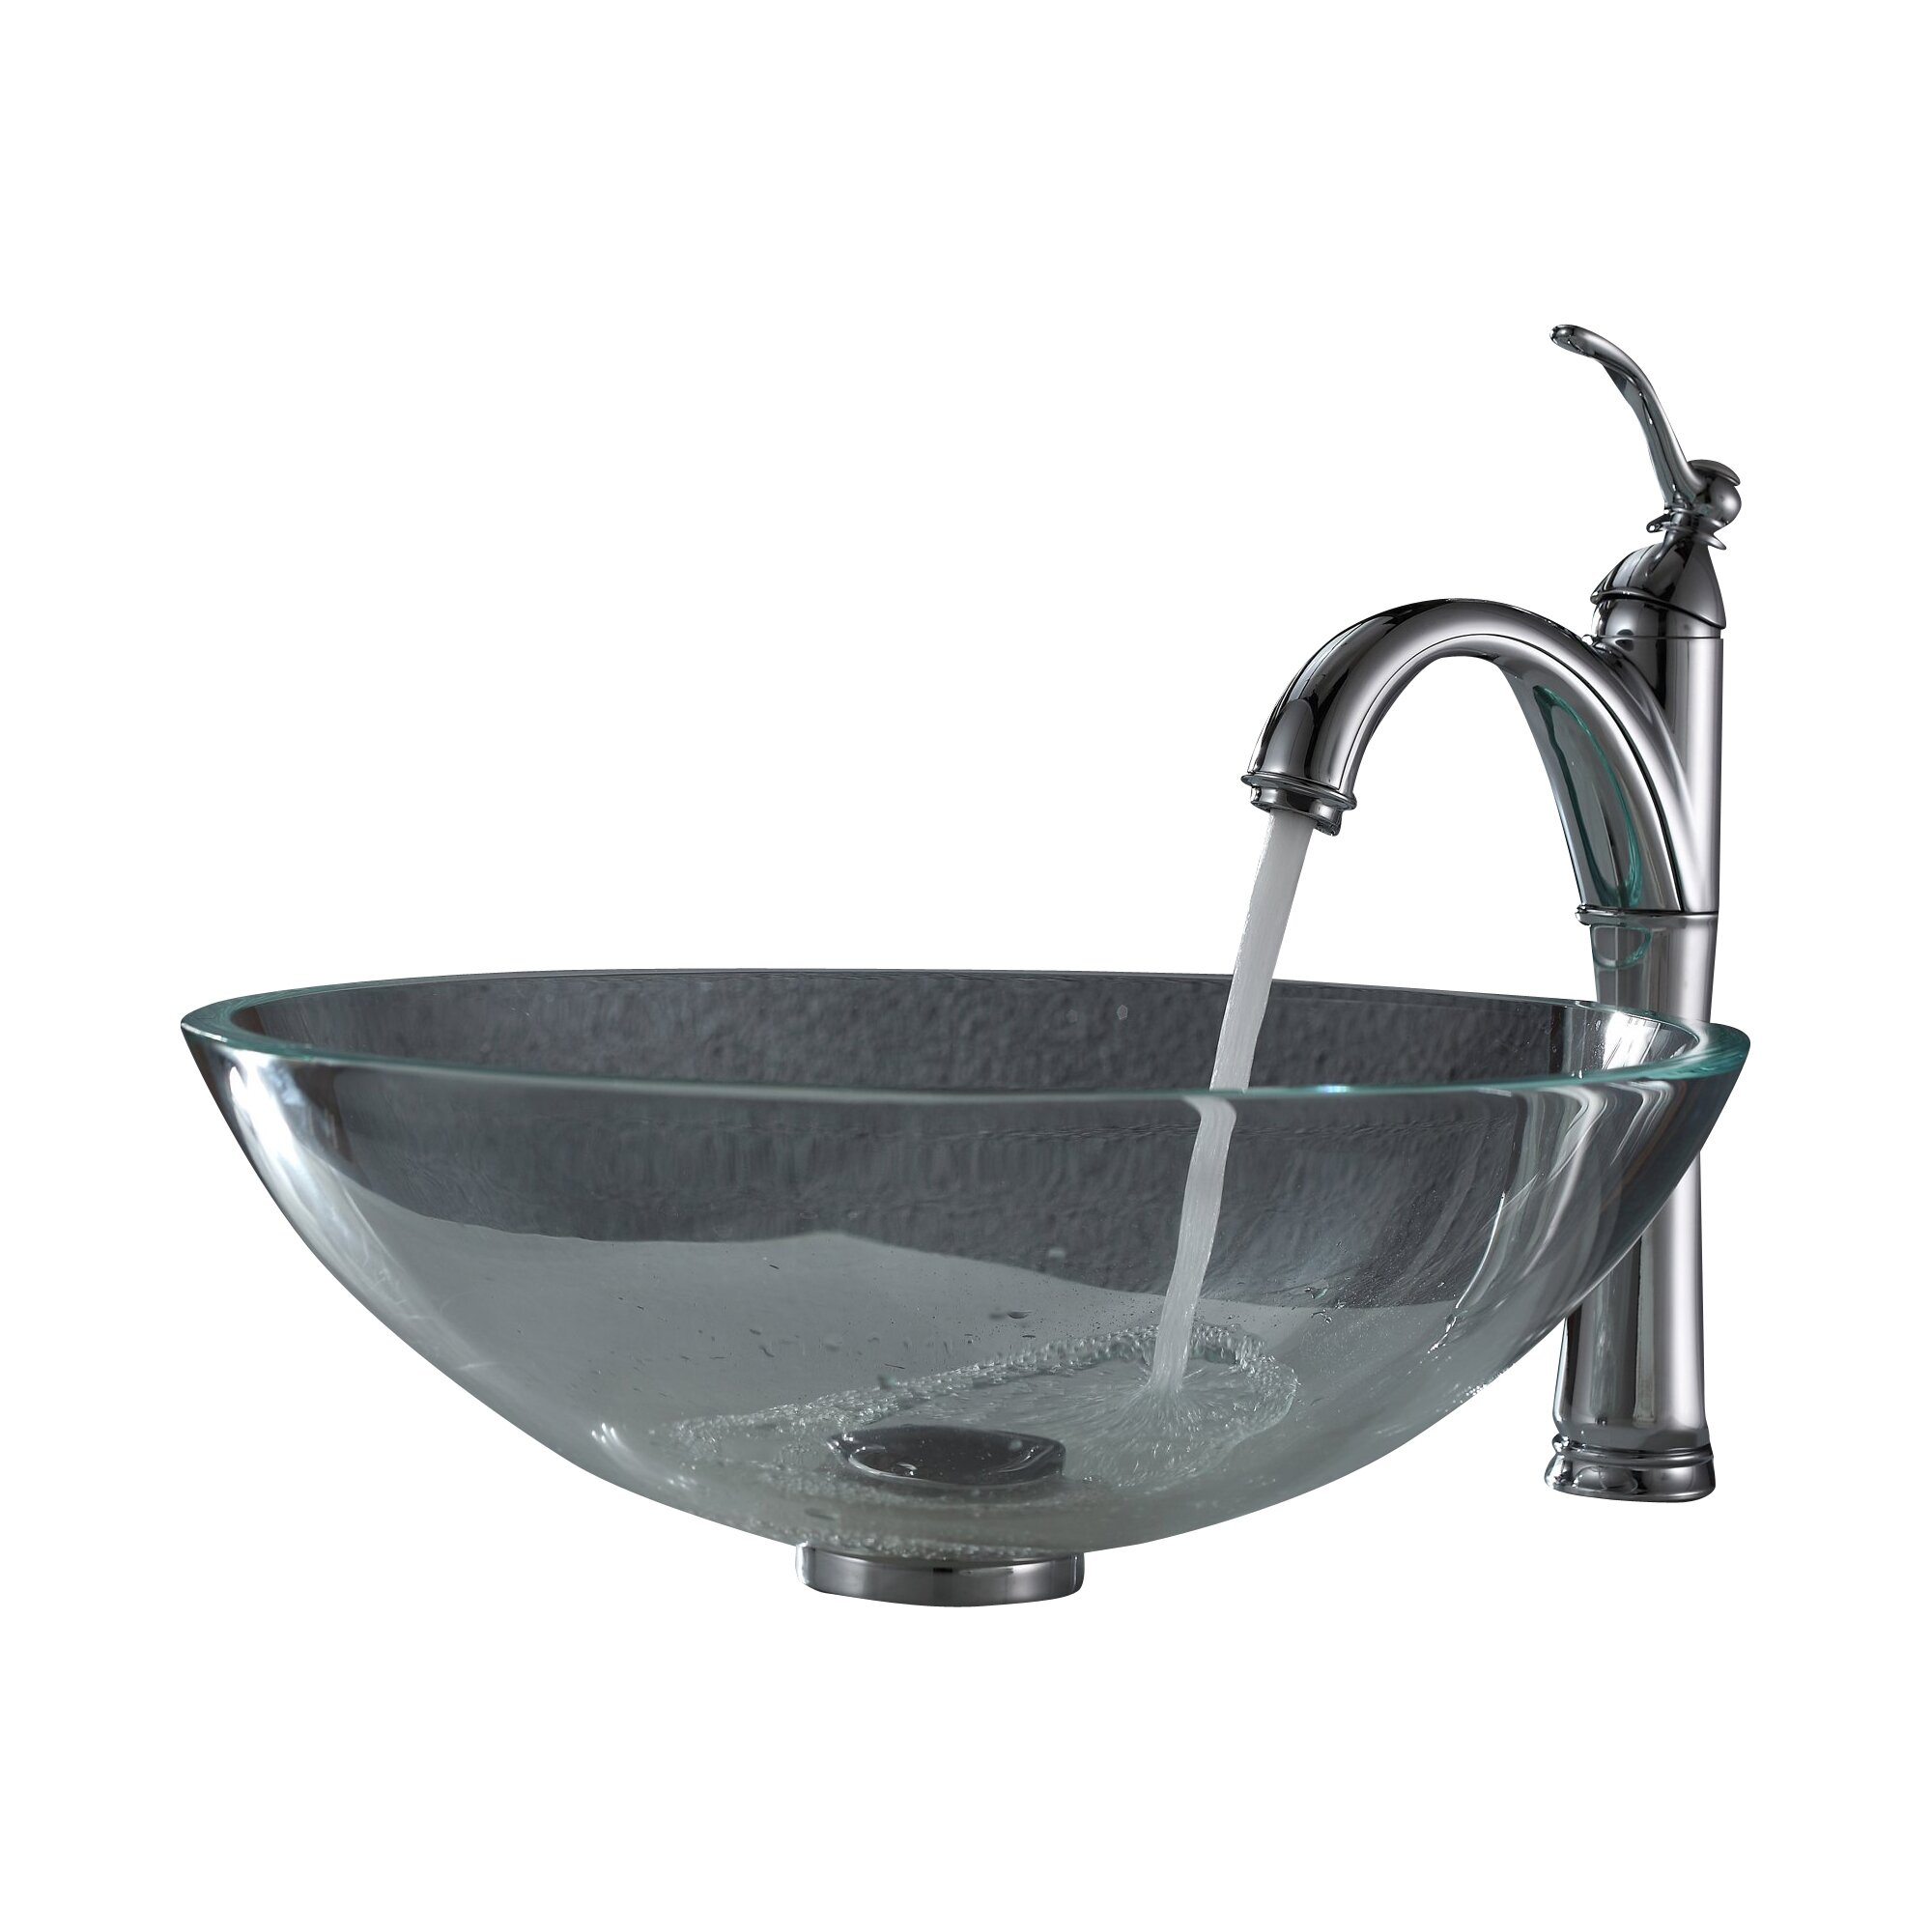 Vessel Sink Mounting Ring : ... Vessel Sink with Pop Up Drain & Mounting Ring & Reviews Wayfair.ca